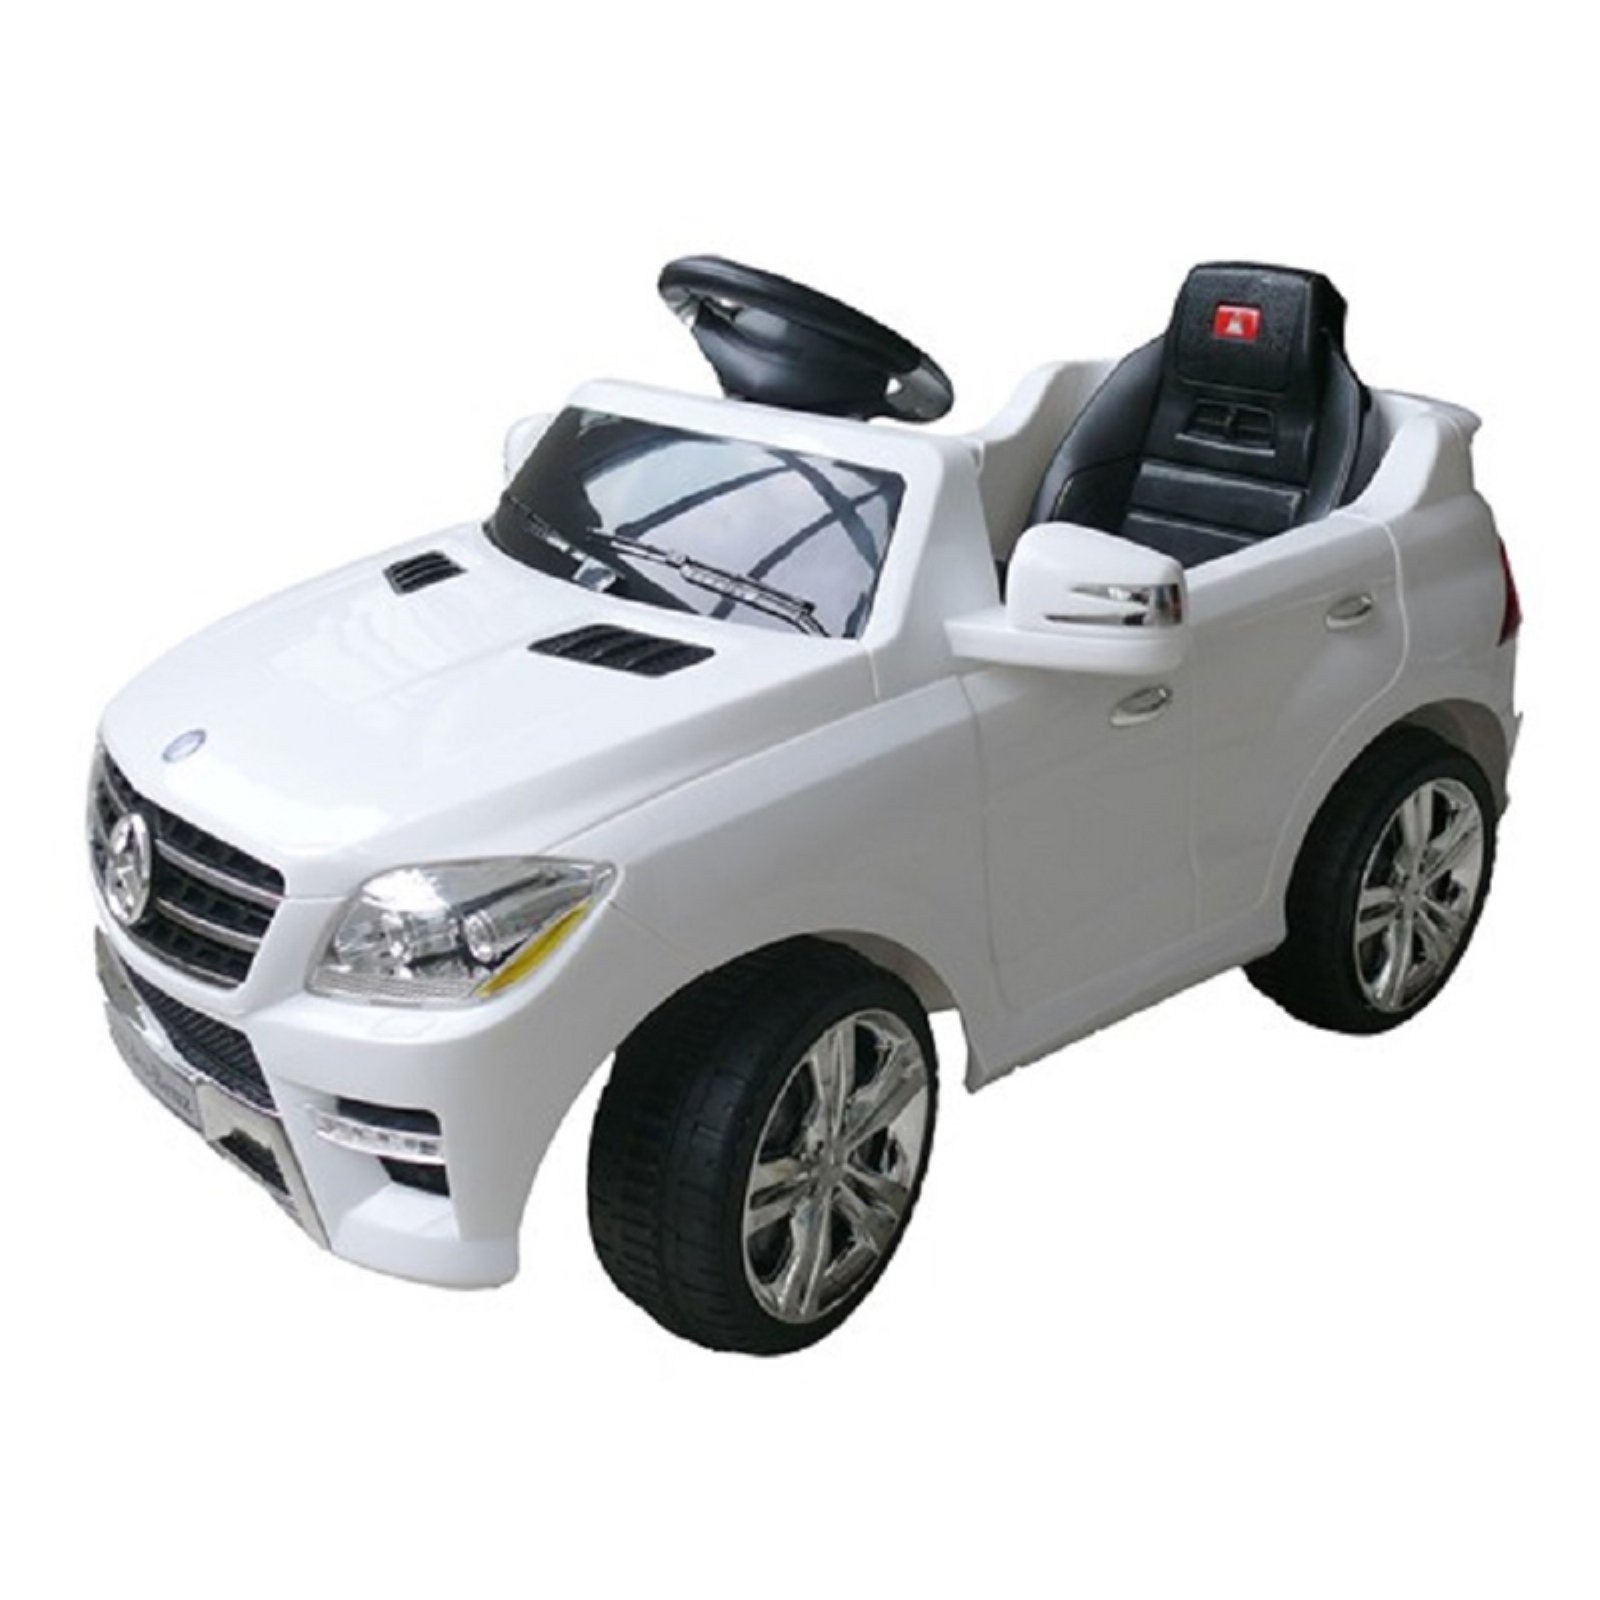 Best Ride On Cars Mercedes ML-350 Battery Powered Riding Toy